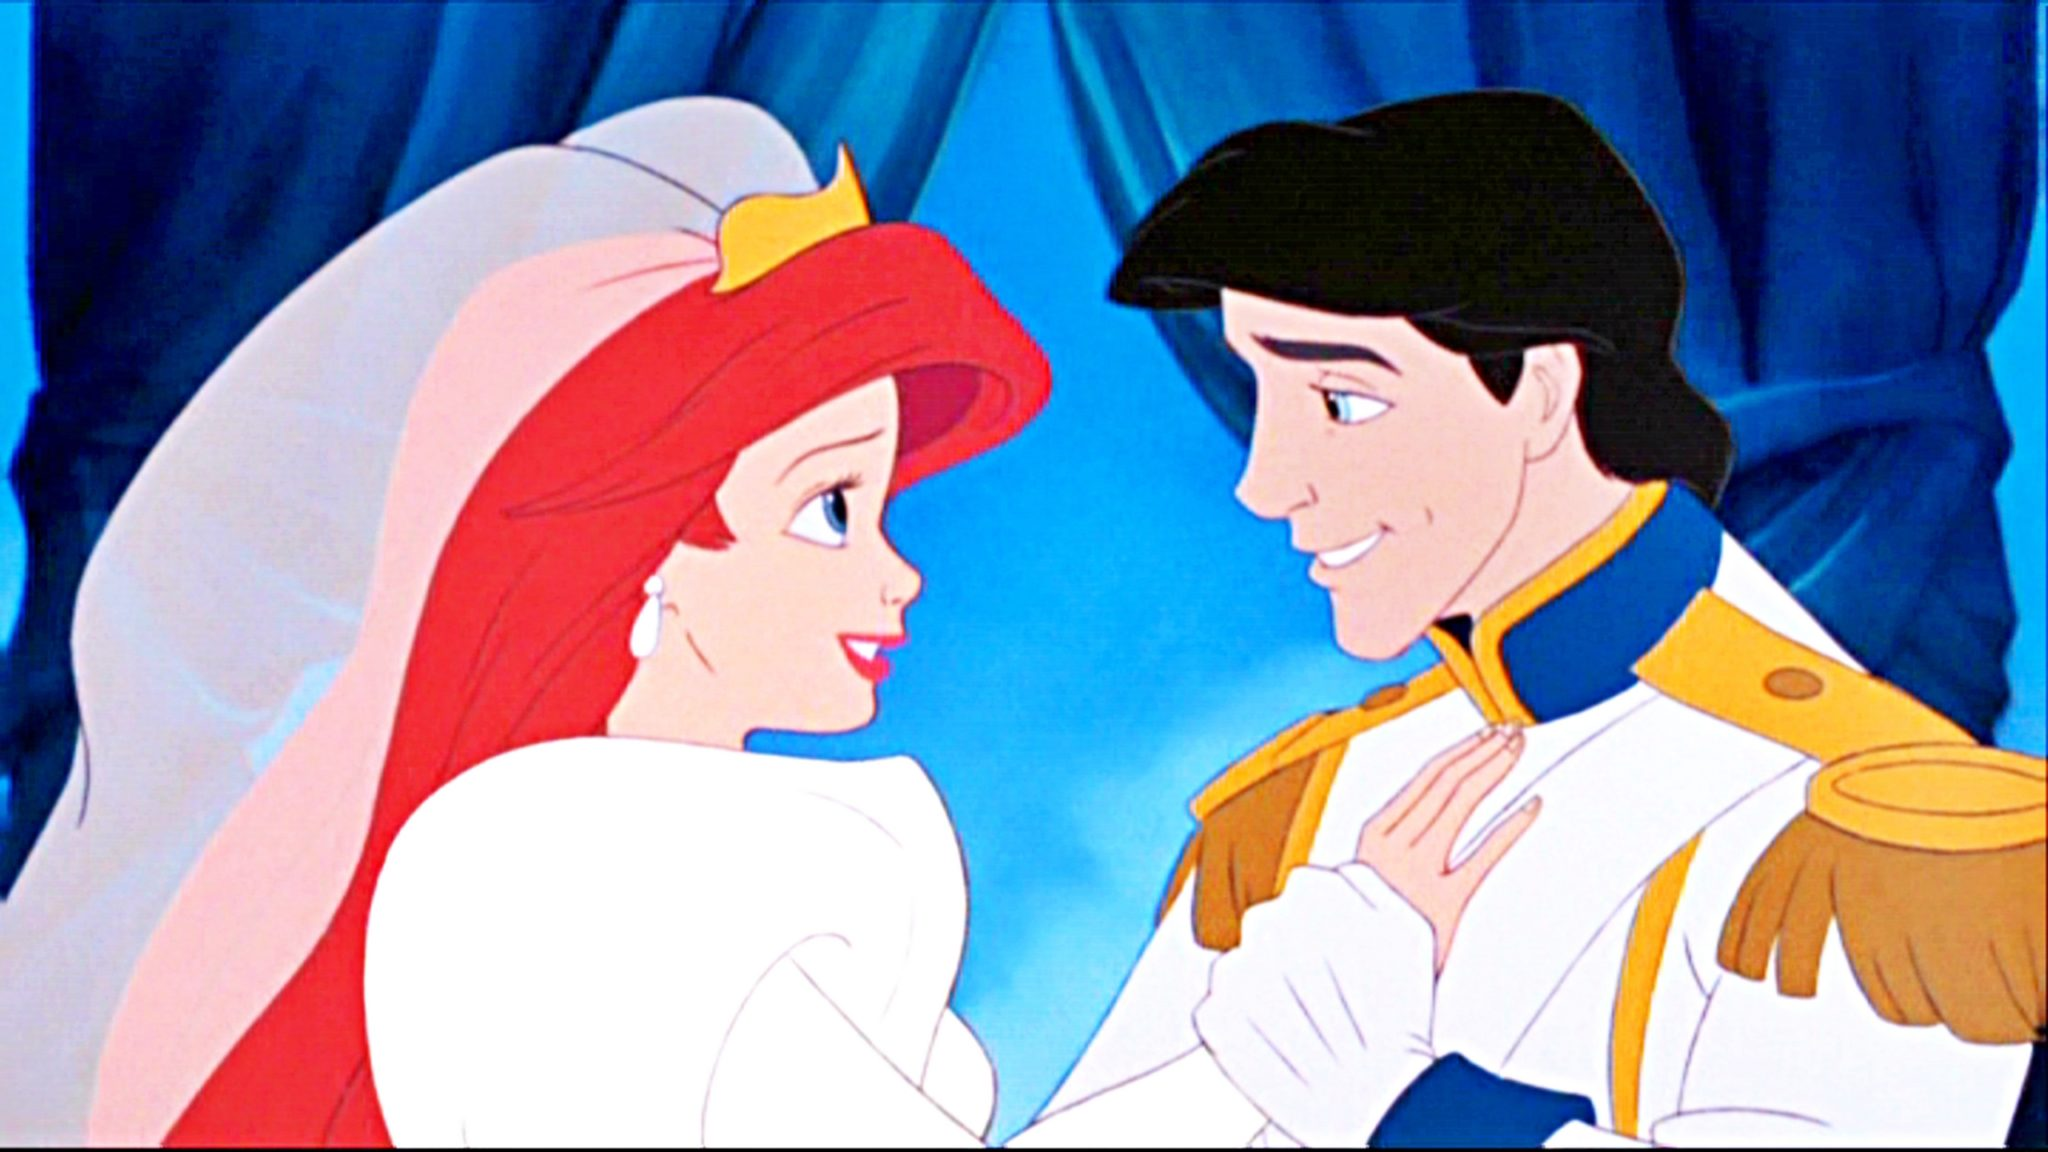 walt-disney-screencaps-princess-ariel-prince-eric-the-little-mermaid-29653531-2560-1440